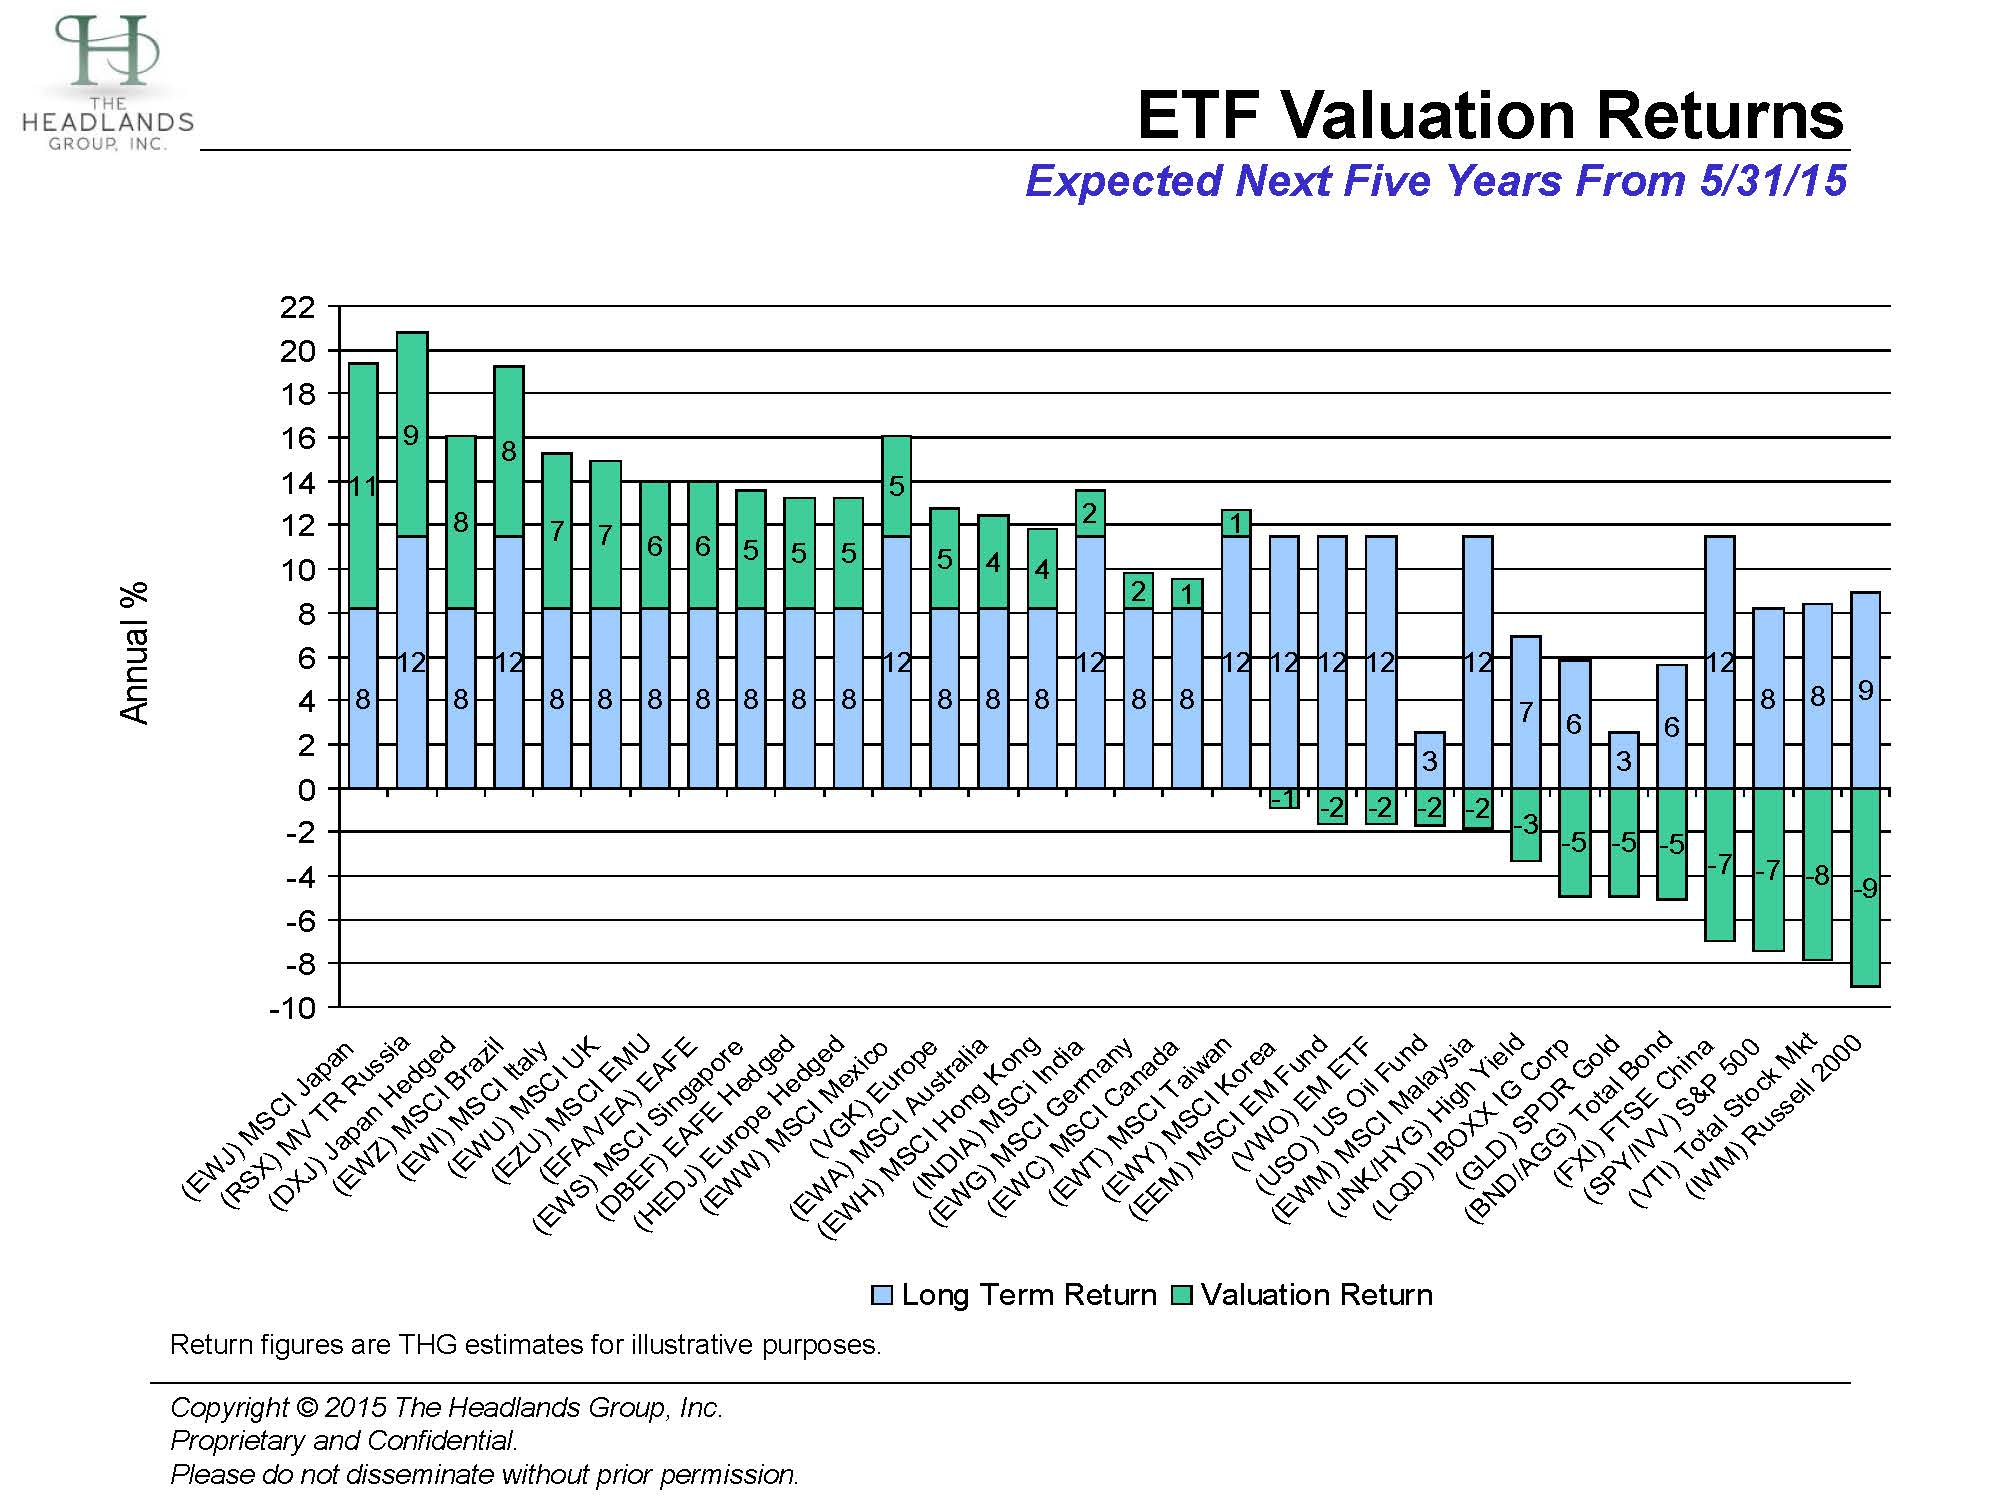 ETF Valuations